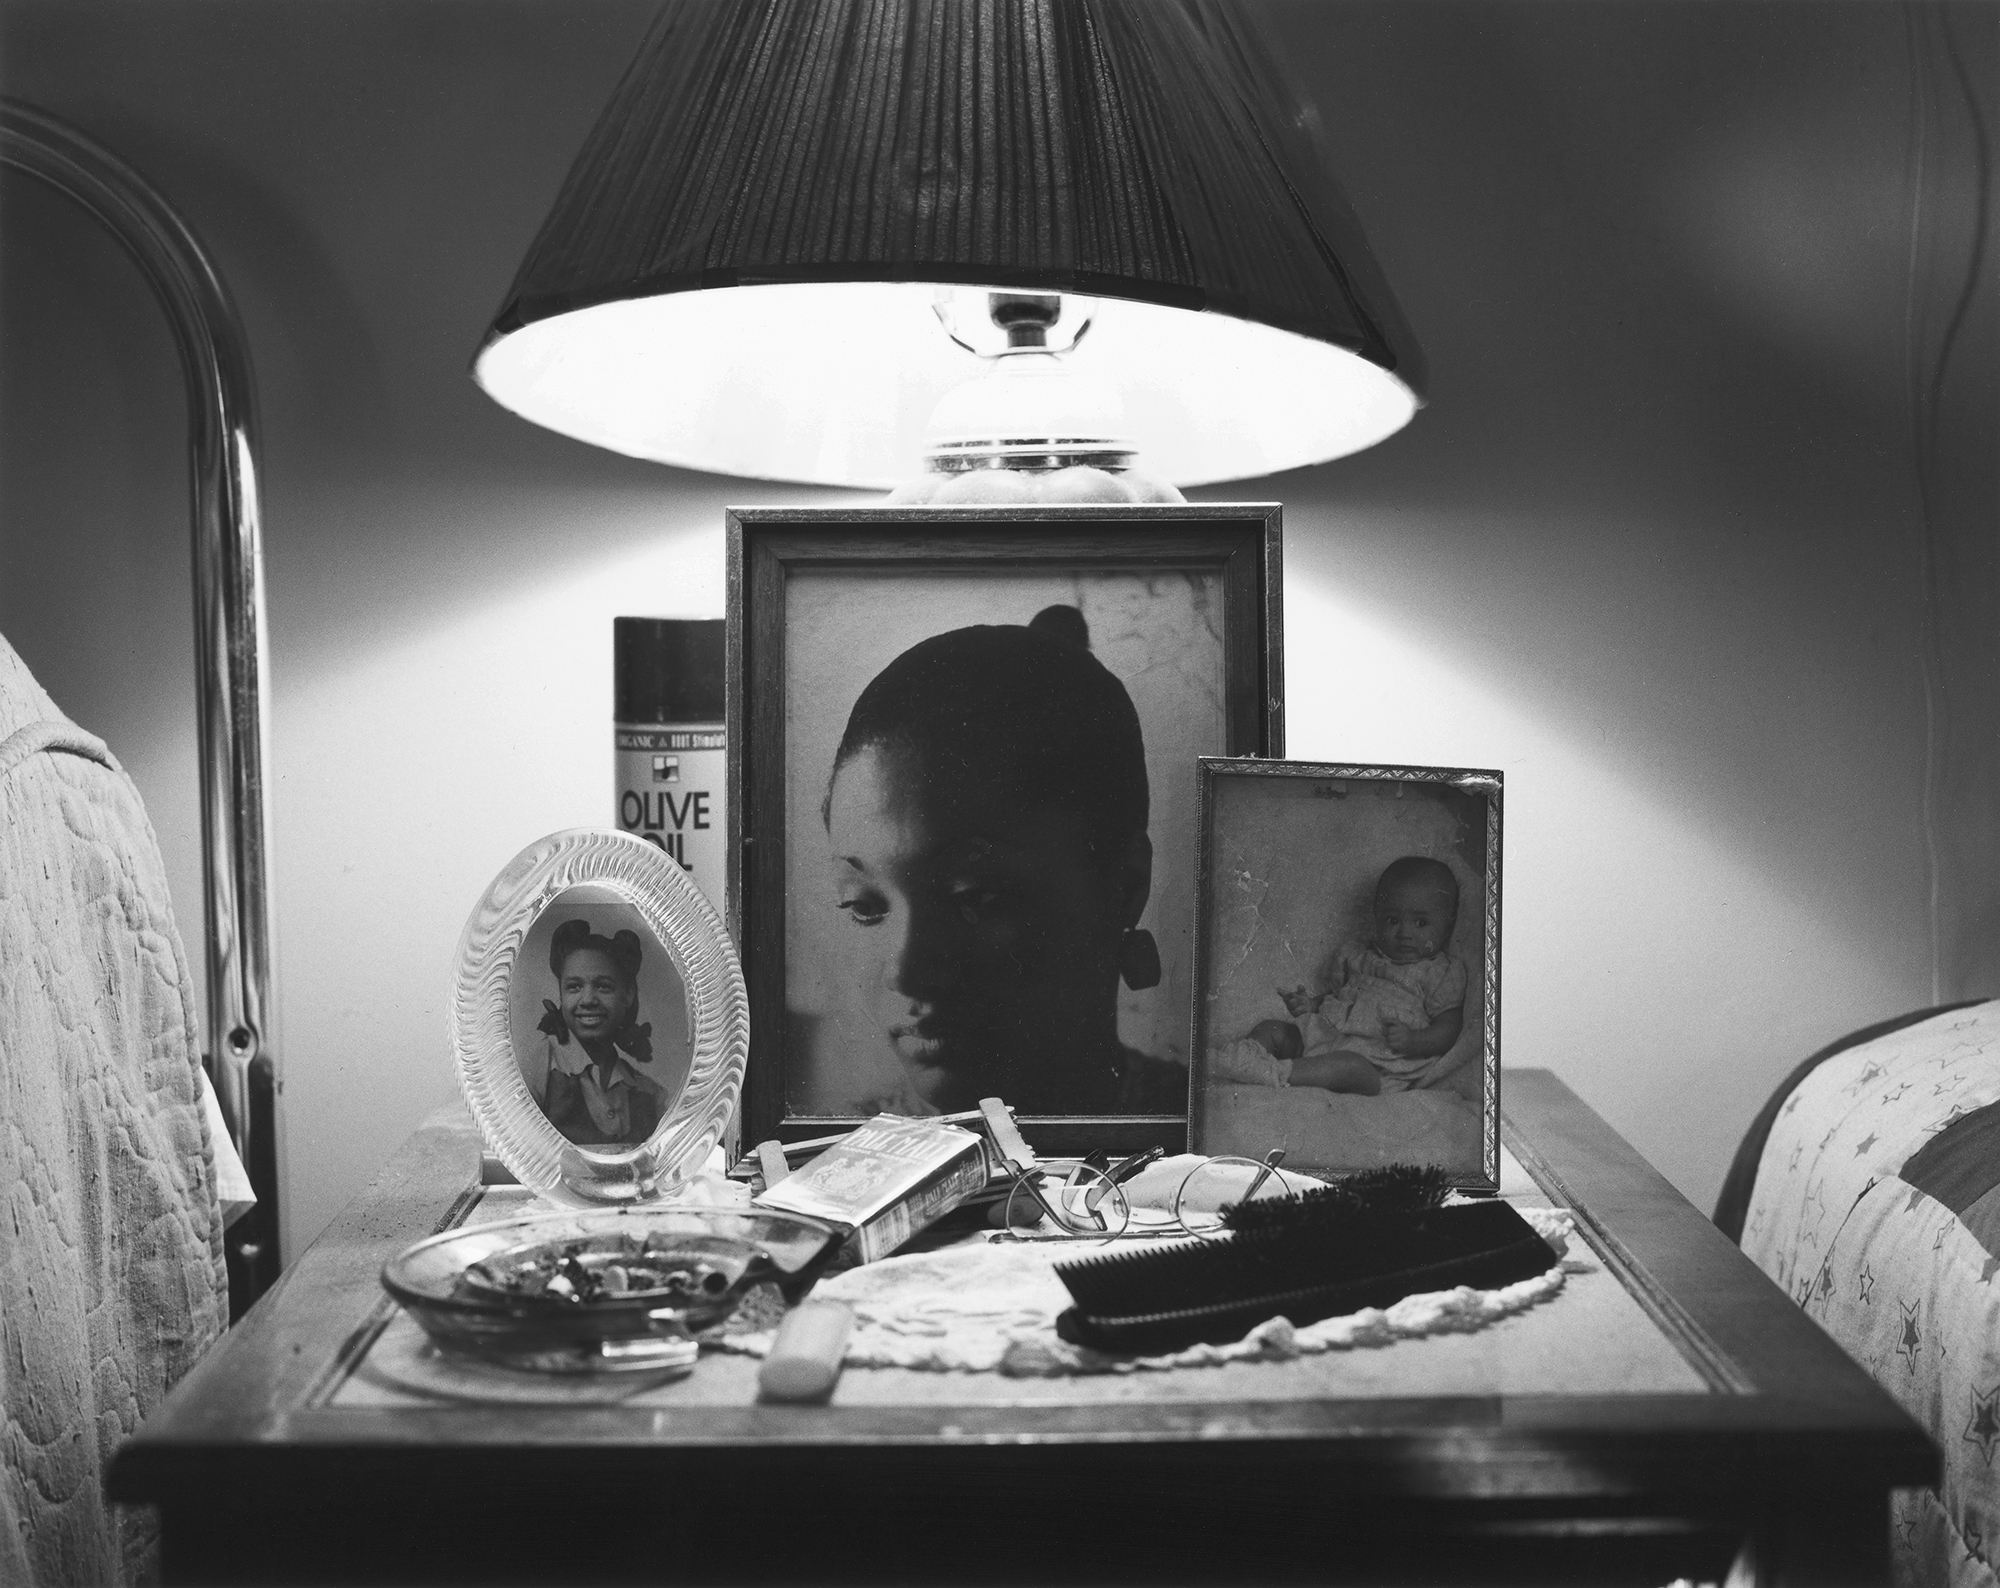 aToya Ruby Frazier, Aunt Midgie and Grandma Ruby, 2007, from The Notion of Family (Aperture, 2014)